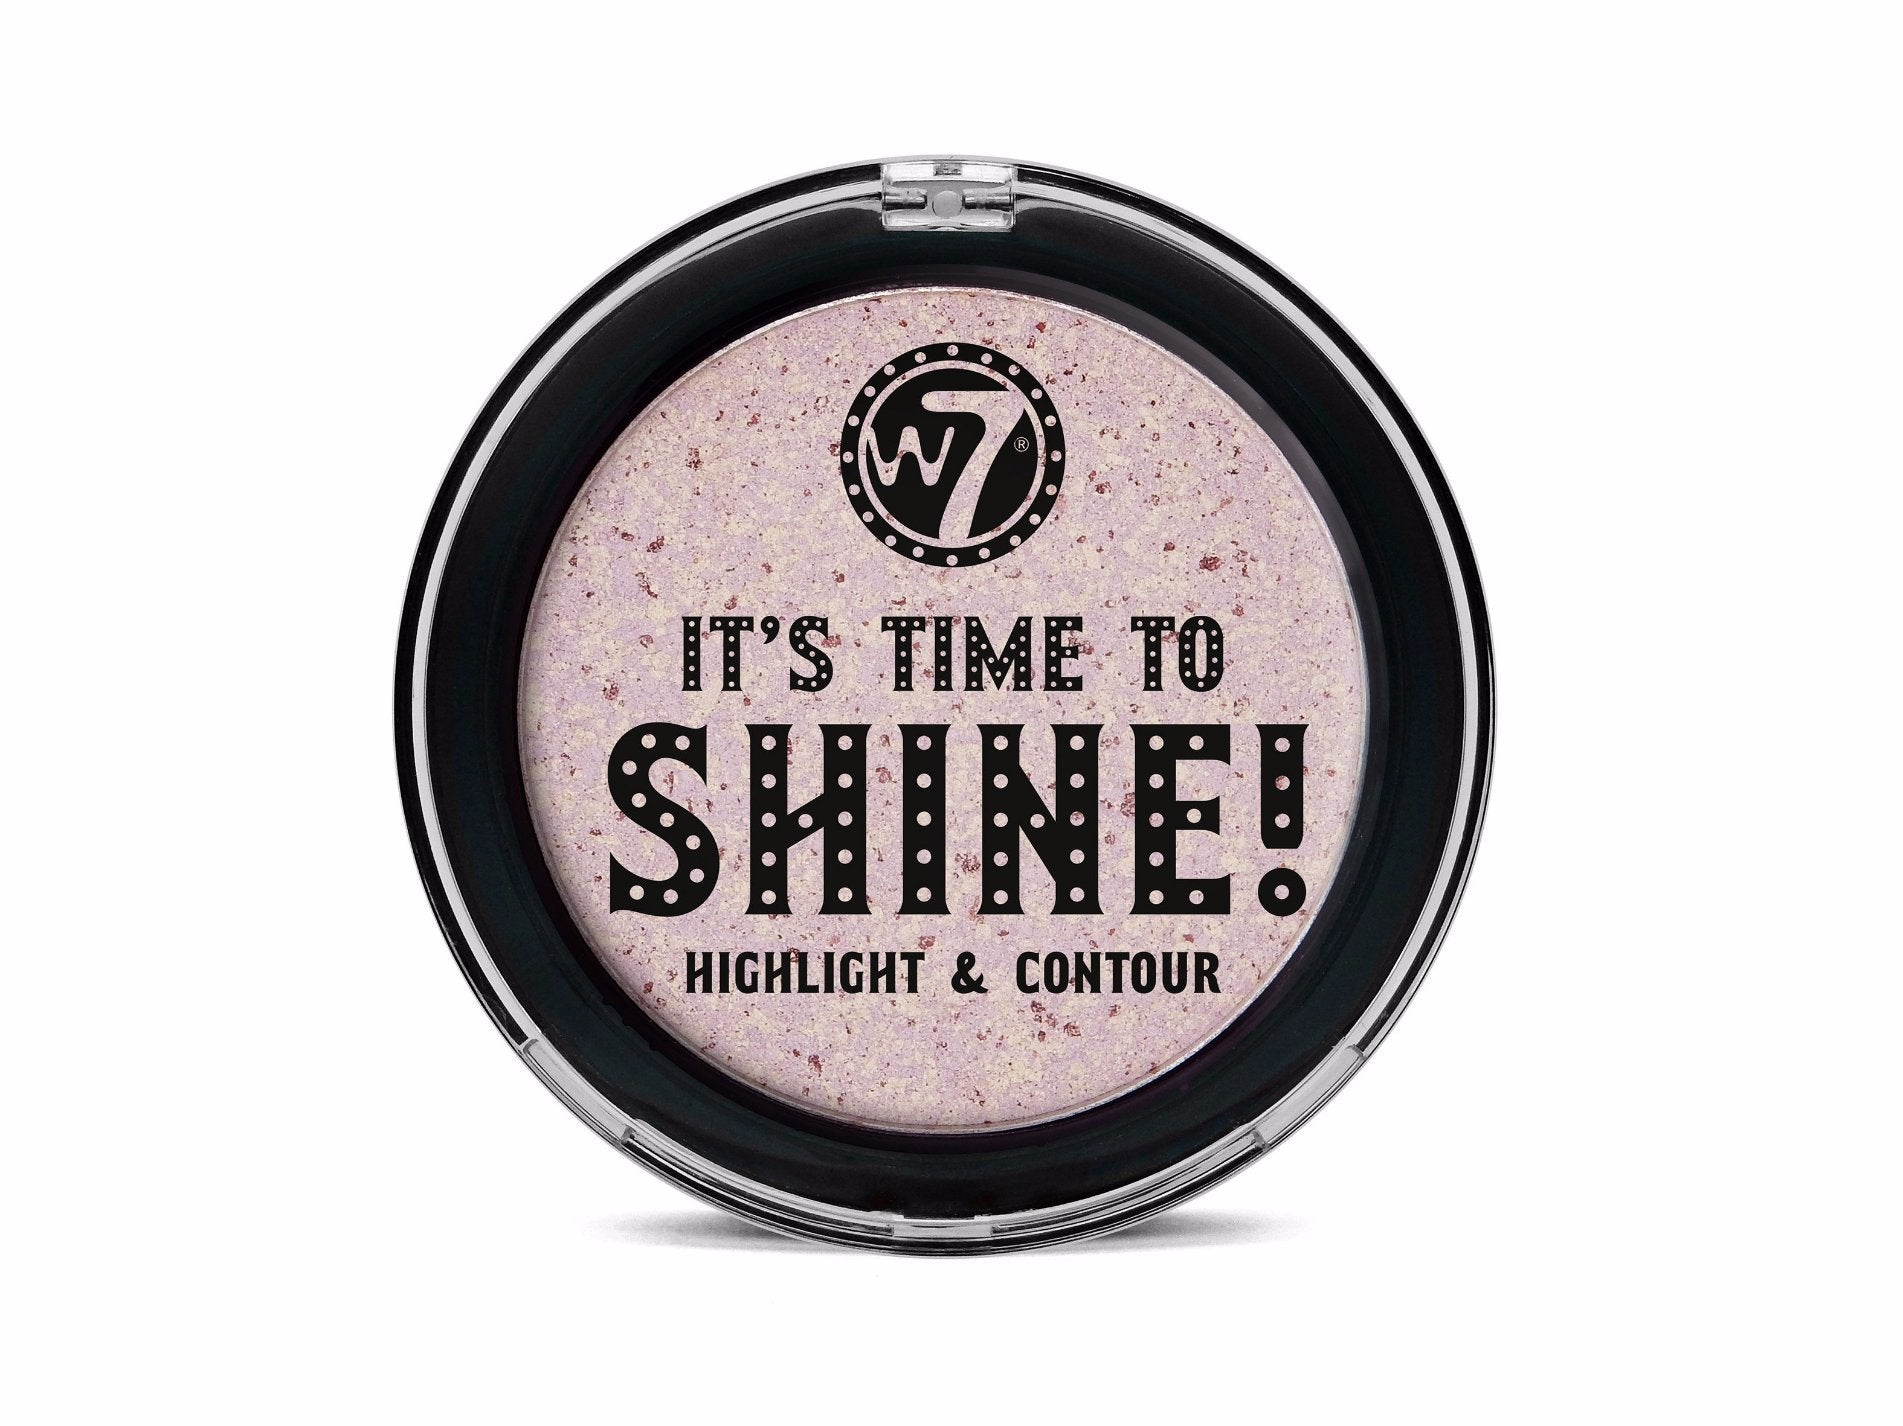 W7 It's Time to Shine!Highlight and Contour Powder - districtglitz.com